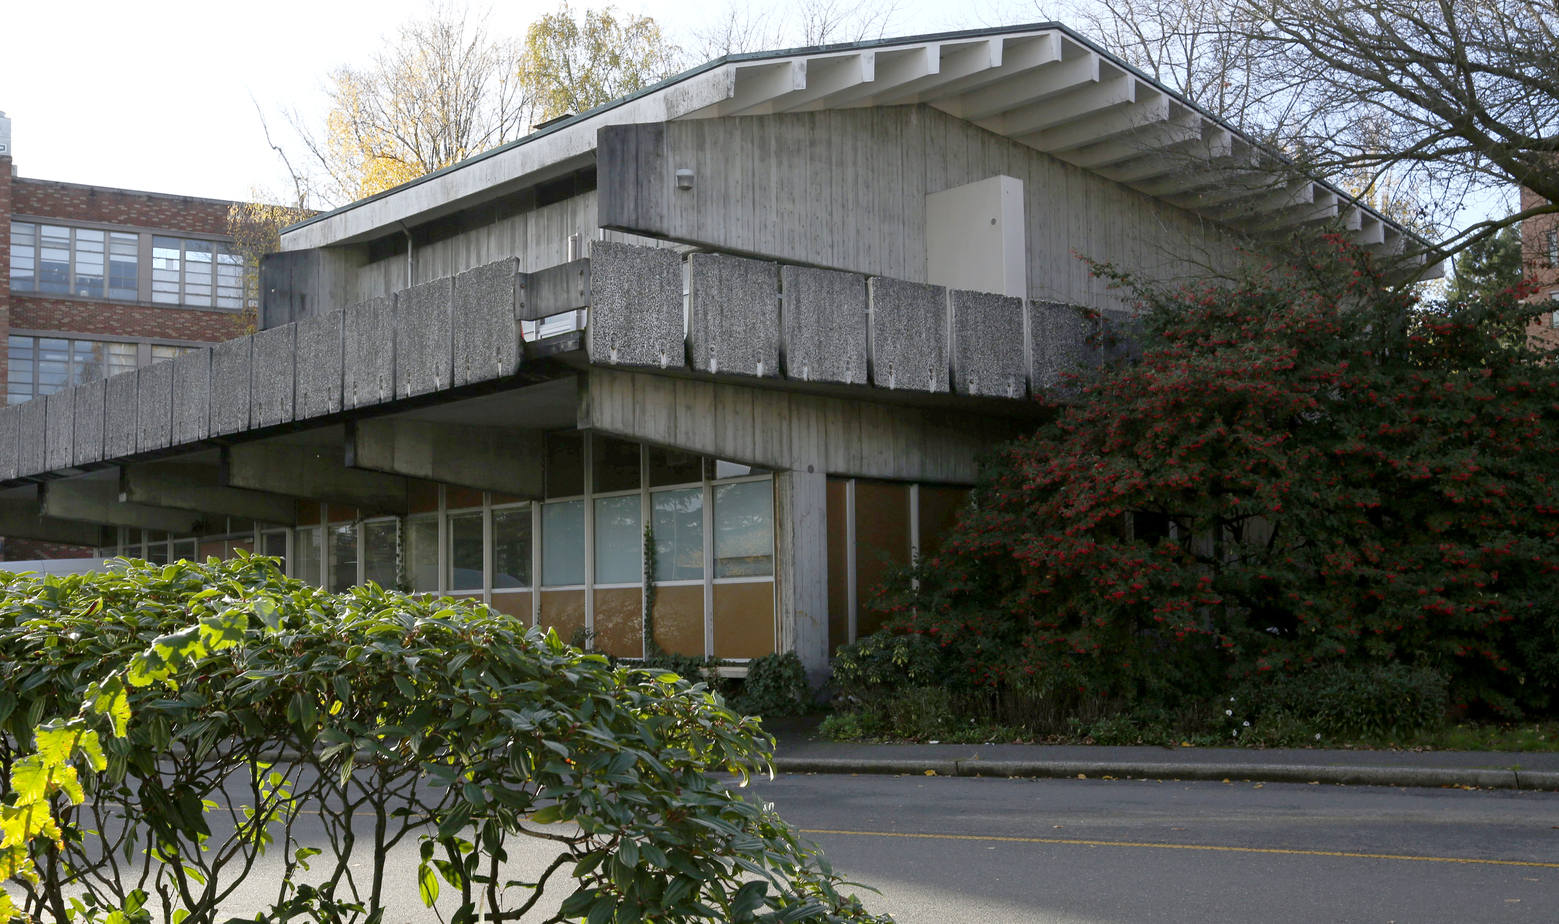 More Hall Annex, on the University of Washington campus in Seattle, housed a nuclear reactor from 1961 until the reactor was decommissioned in 2007. (Ken Lambert/The Seattle Times)